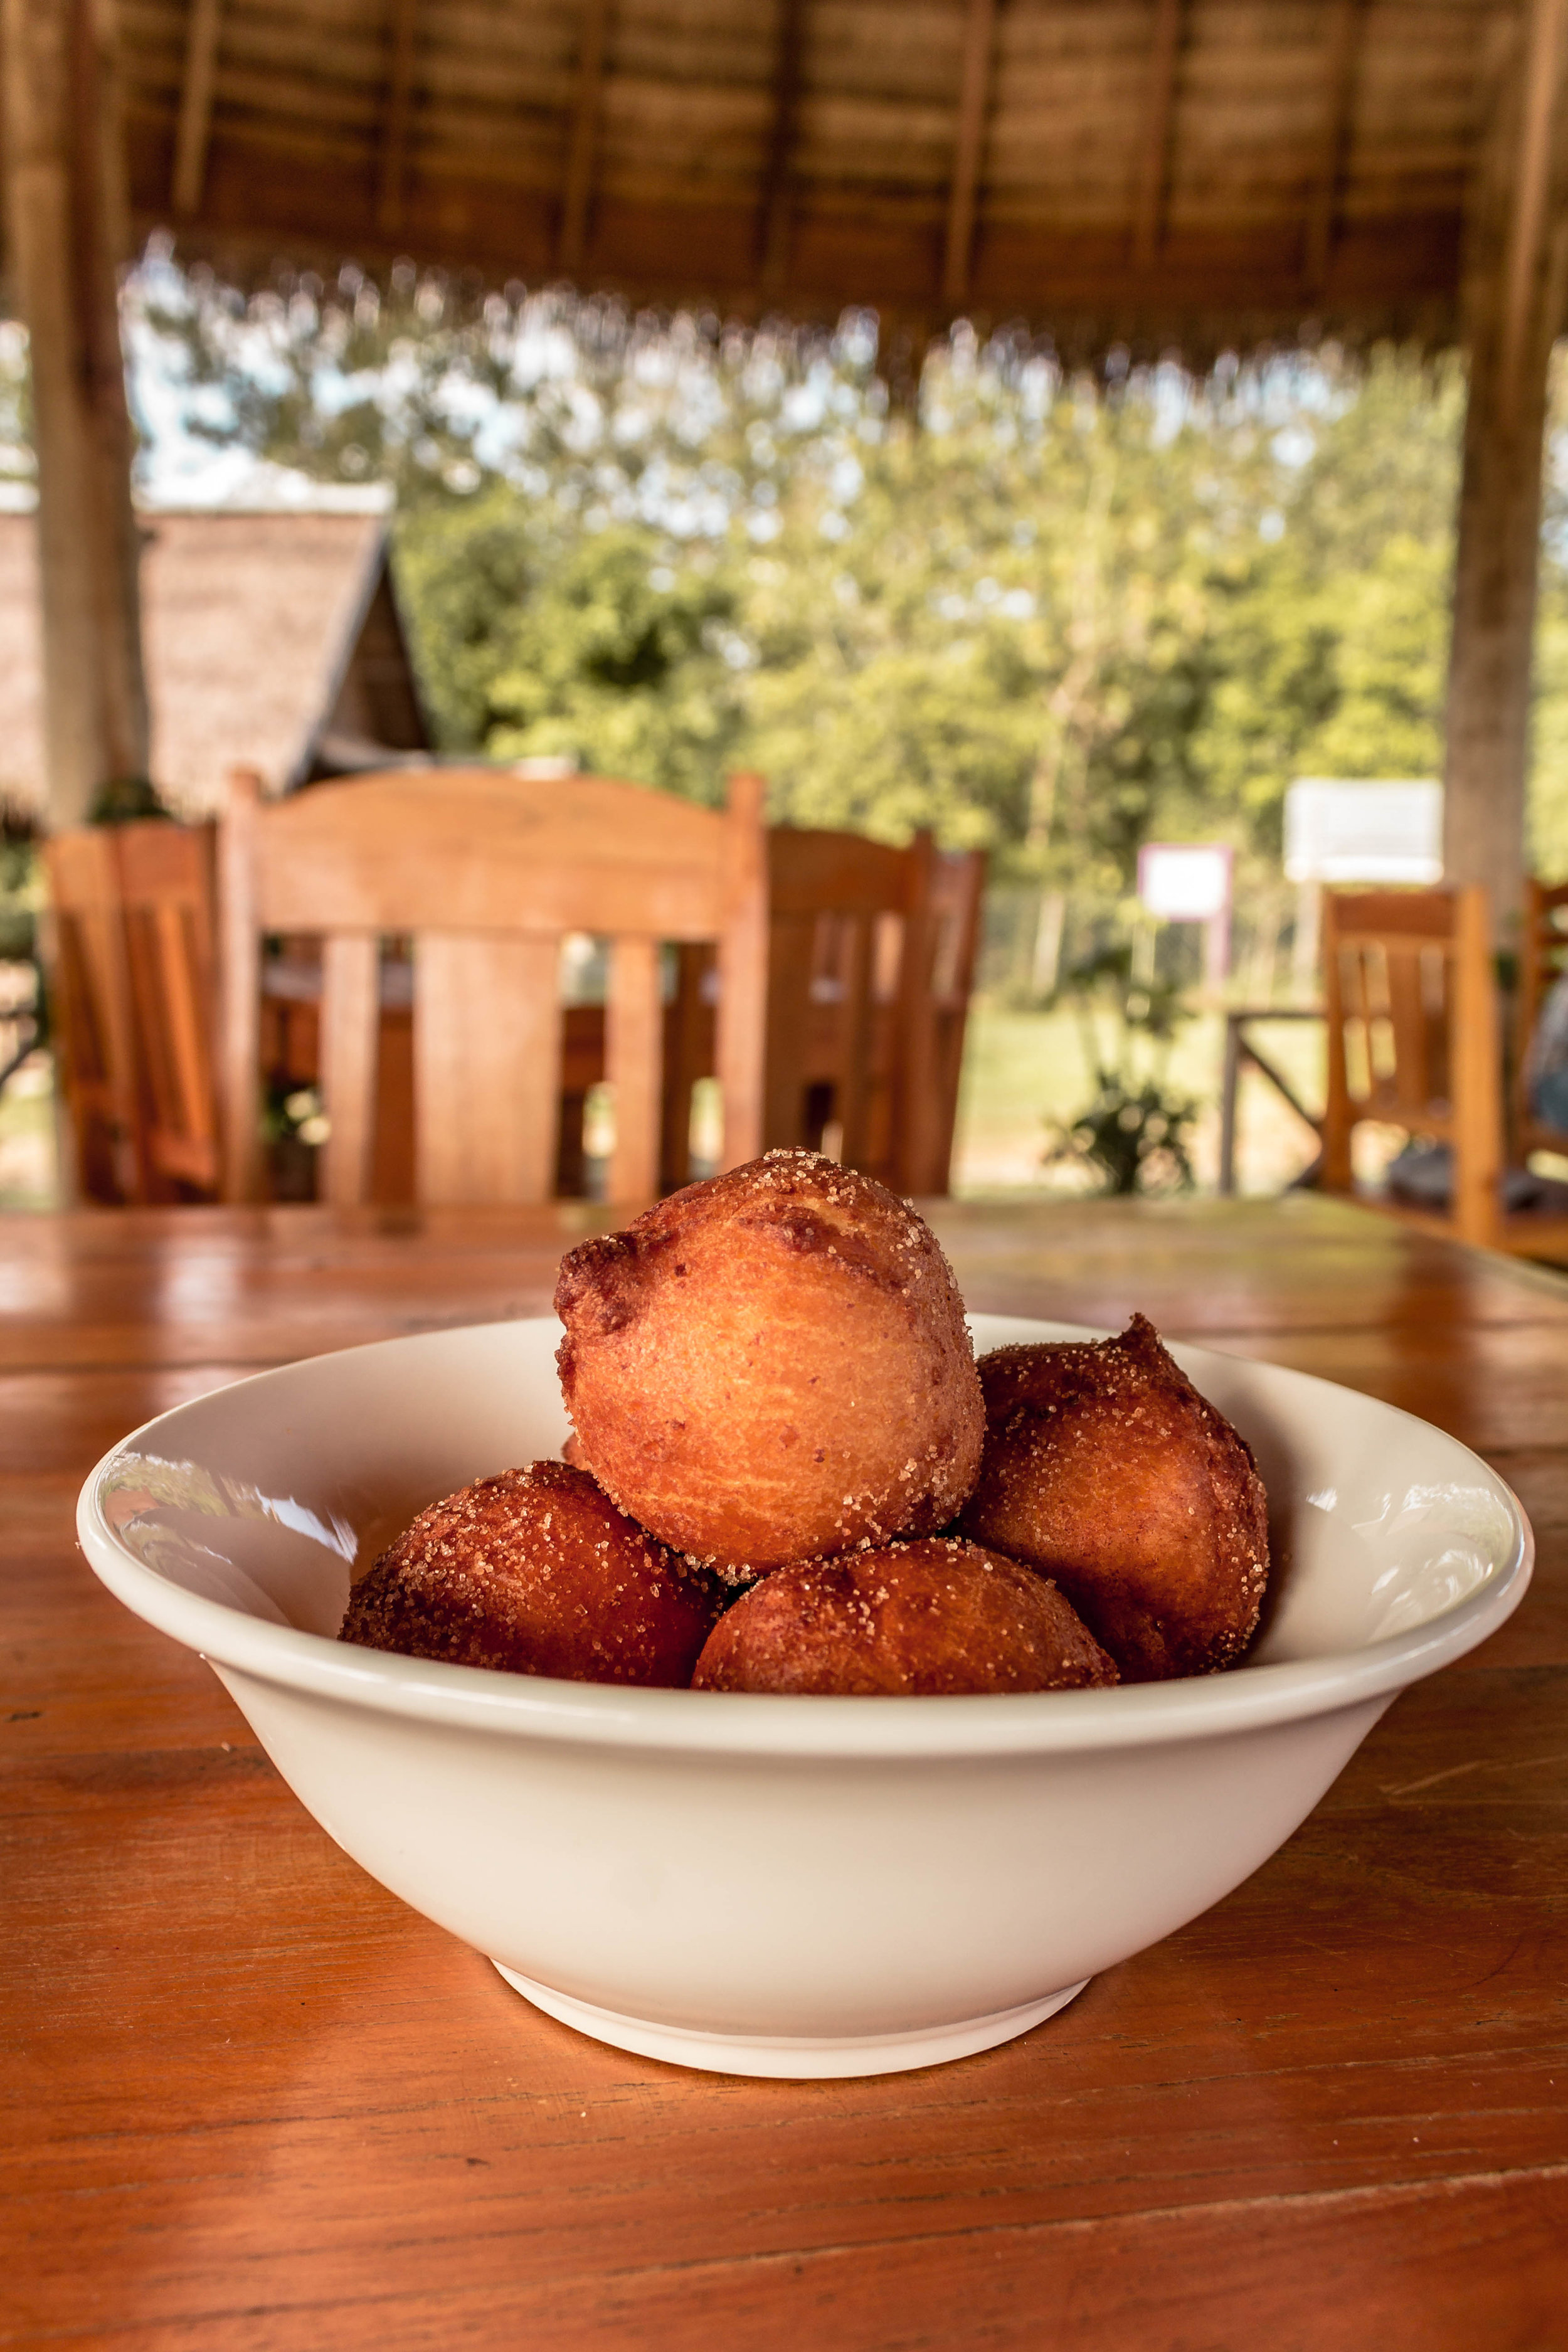 RICOTTA DONUTS SERVED HOT AND FRESH